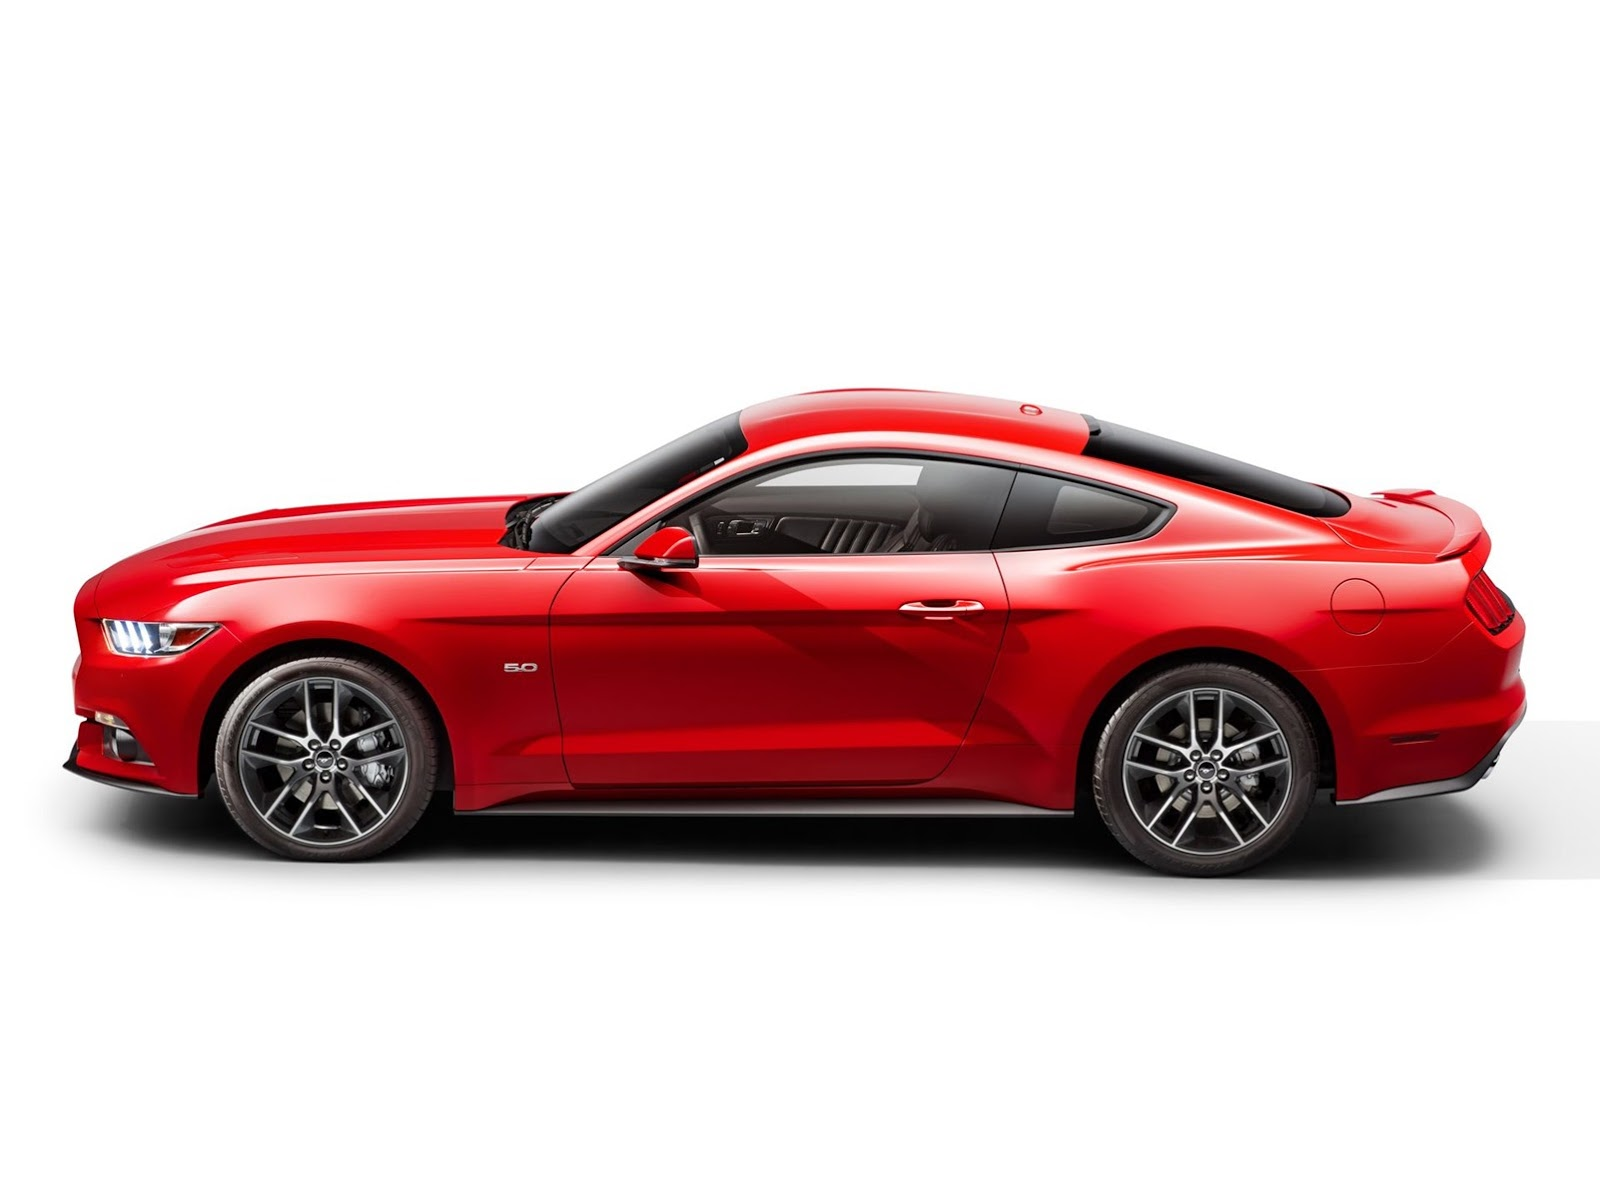 2014 - [Ford] Mustang VII - Page 6 2015-Ford-Mustang-Photos-63%25255B2%25255D